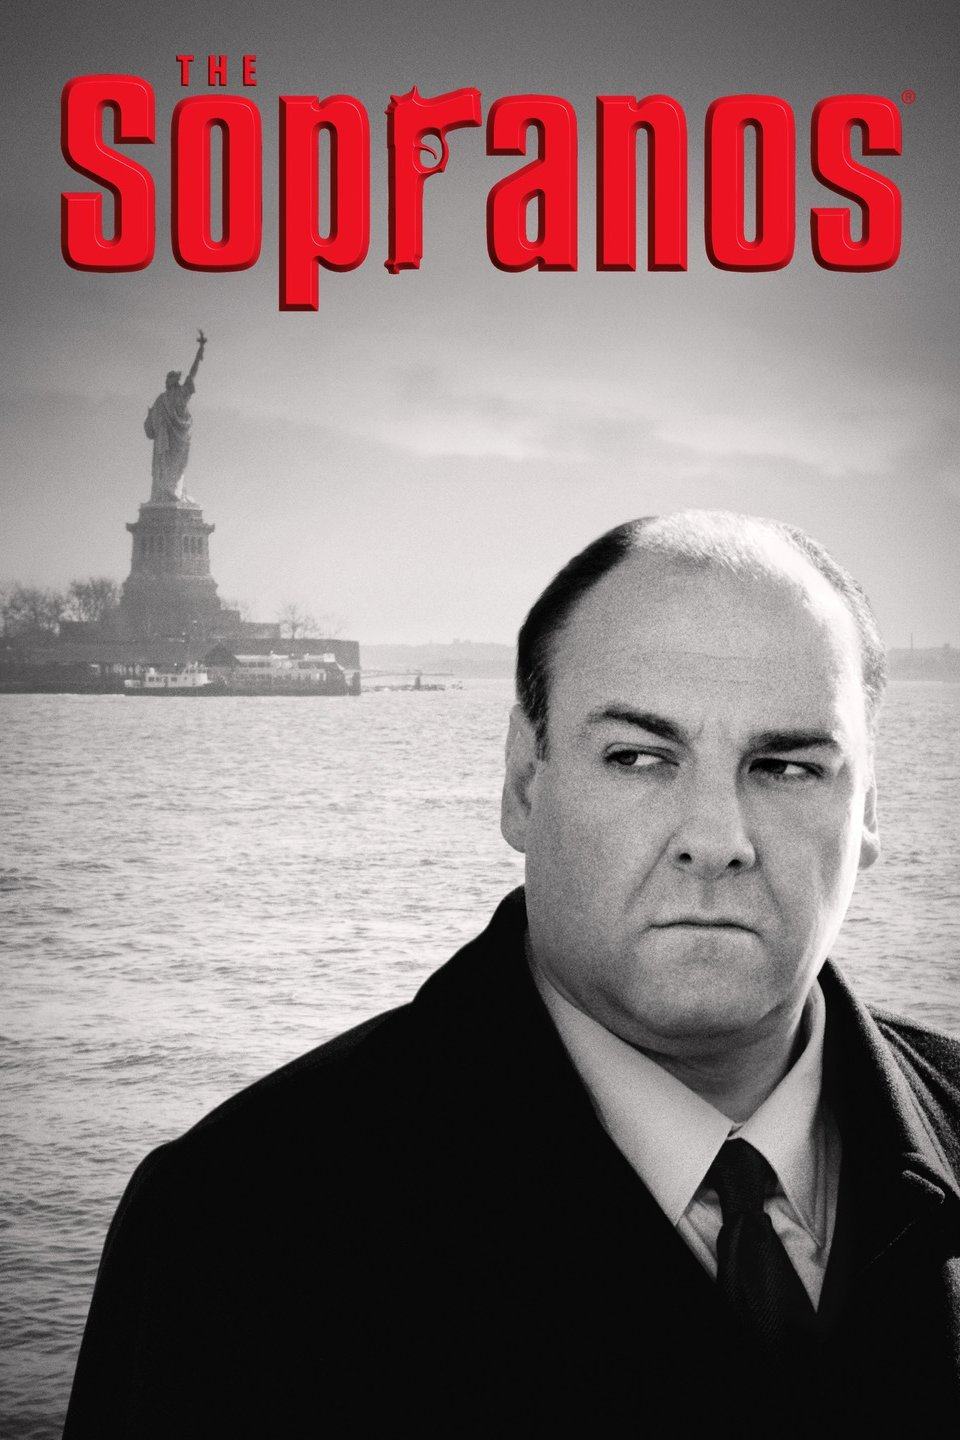 In the 2000s, when the mob melodrama ''The Sopranos'' sang its seasonal swan song – inducing withdrawal agita among millions of the show's hopelessly addicted viewers – more than a few sighs of relief will be heard. Specifically, from restaurateurs and movie-house owners who have taken, um, a hit on Sunday nights during the 13-week HBO series.  ''I'll be glad when it's over,'' said William Lee, the Sunday manager of Bill Hong, the Cantonese restaurant on East 56th Street in Manhattan. ''People seem to want to get out of here by 9, to see the show. Actually, our seating is pretty much done by 8.''  Wounded as he is overall by the Soprano Effect, Mr. Lee has nevertheless picked up a few diners for the show. He is host to what may be the most famous weekly Sopranos party in Manhattan: his restaurant was usually where Mayor Rudolph W. Giuliani (107th Mayor of New York City) gathers with several friends, including Judith Nathan, for a pre-show meal.  ''Every Sunday, before 9, there is a mass evacuation from the restaurant,''  said Mr. Lee.